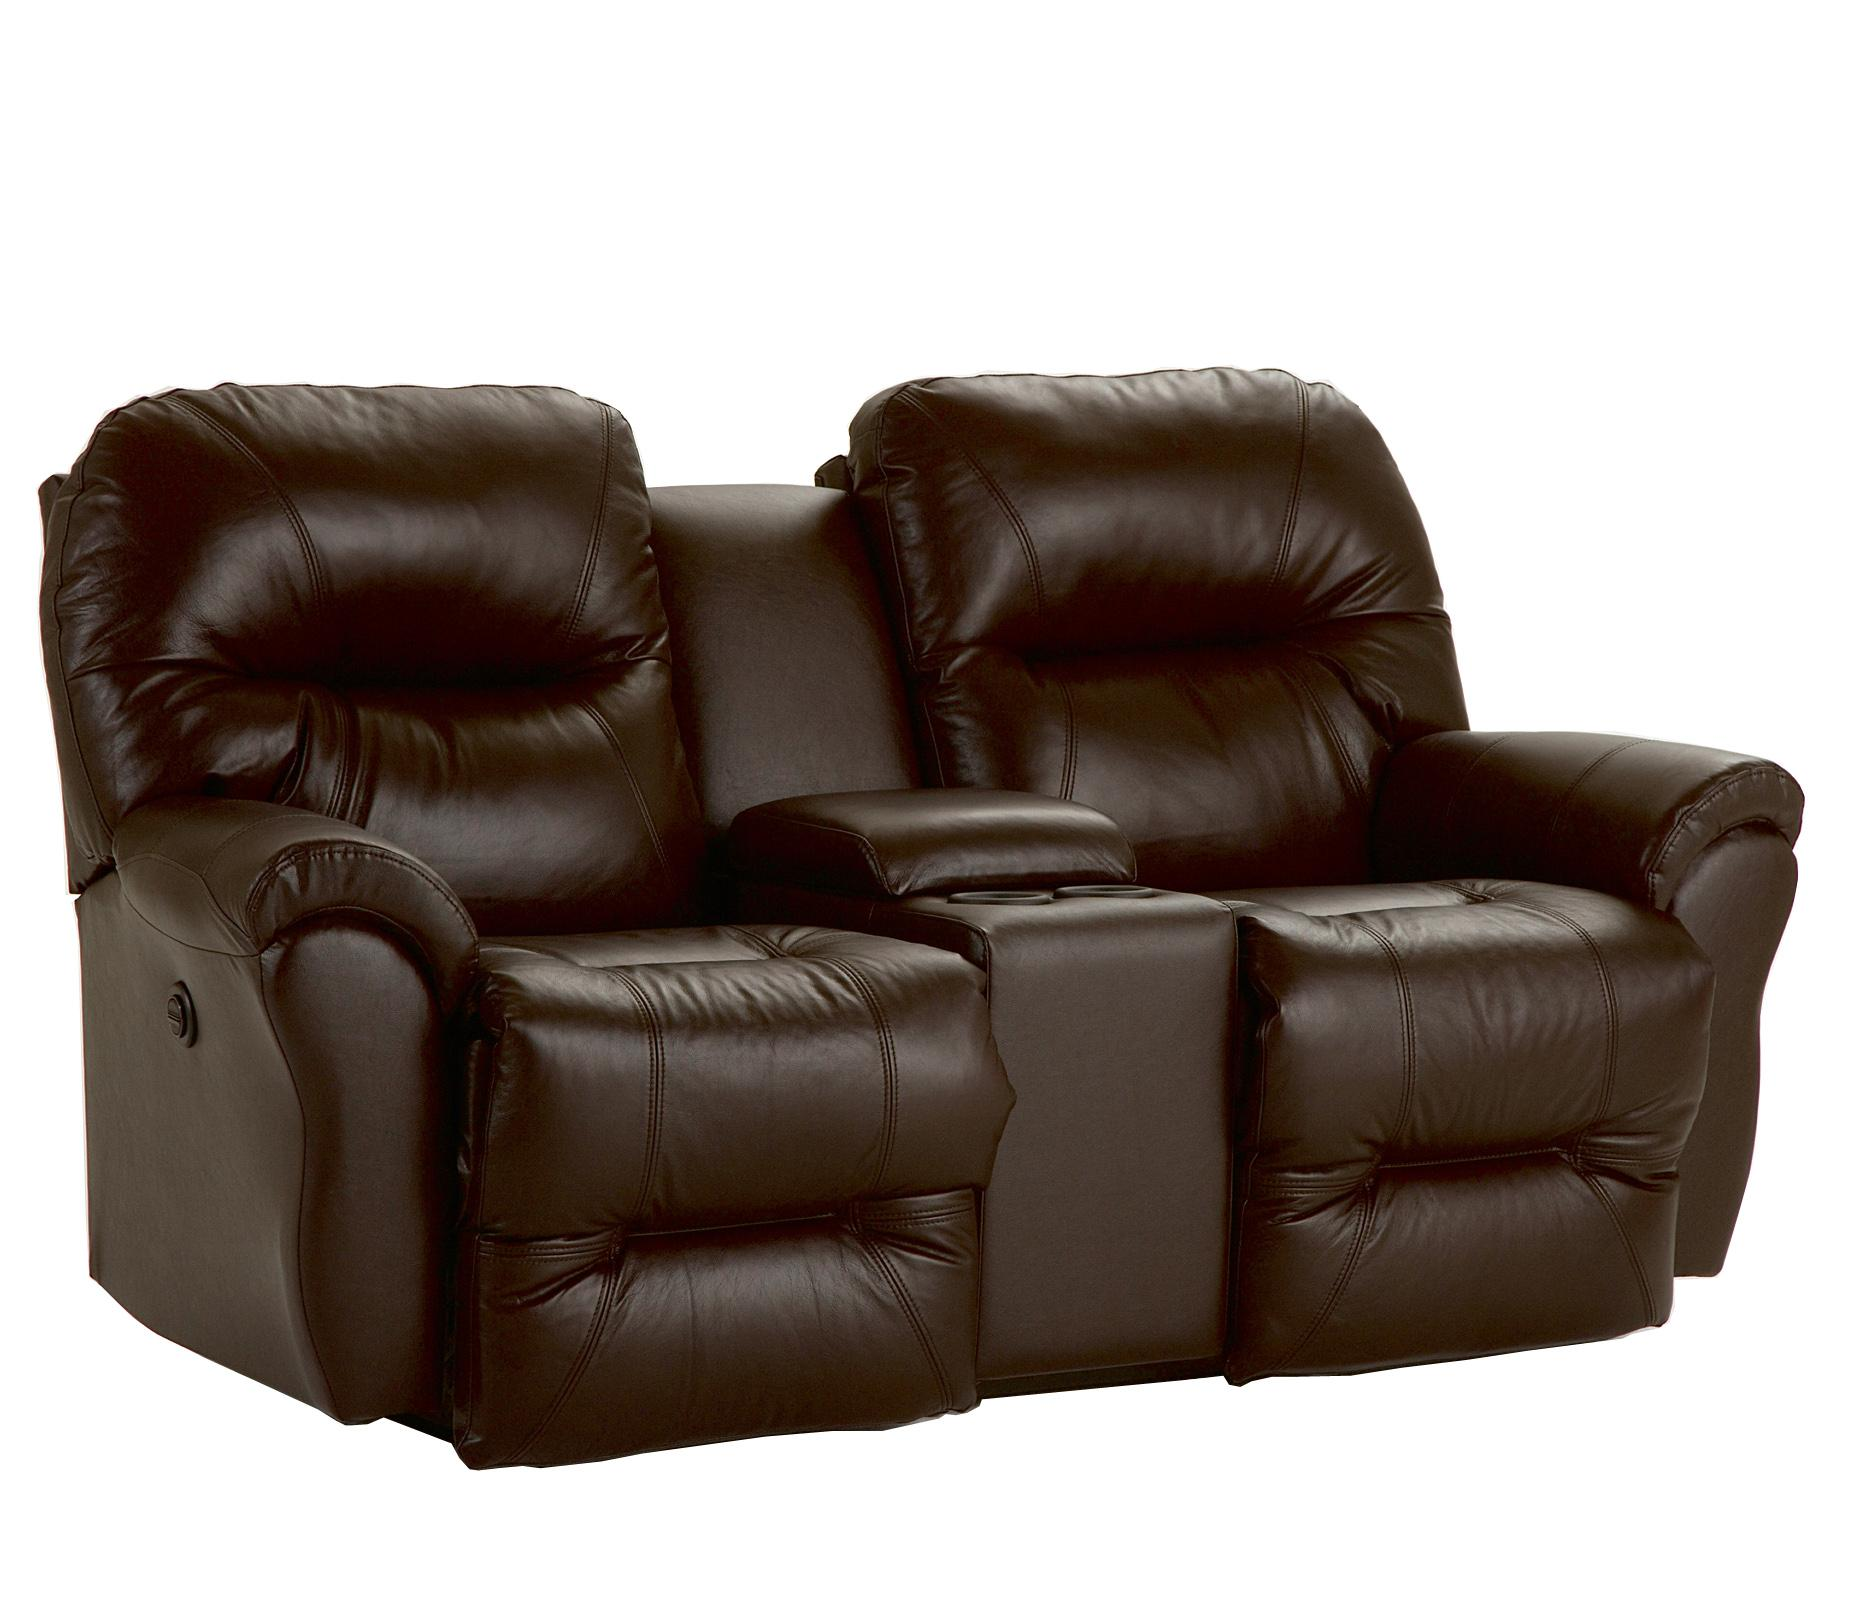 best power reclining sofa set red leather sofas gumtree manchester bodie space saver loveseat with storage